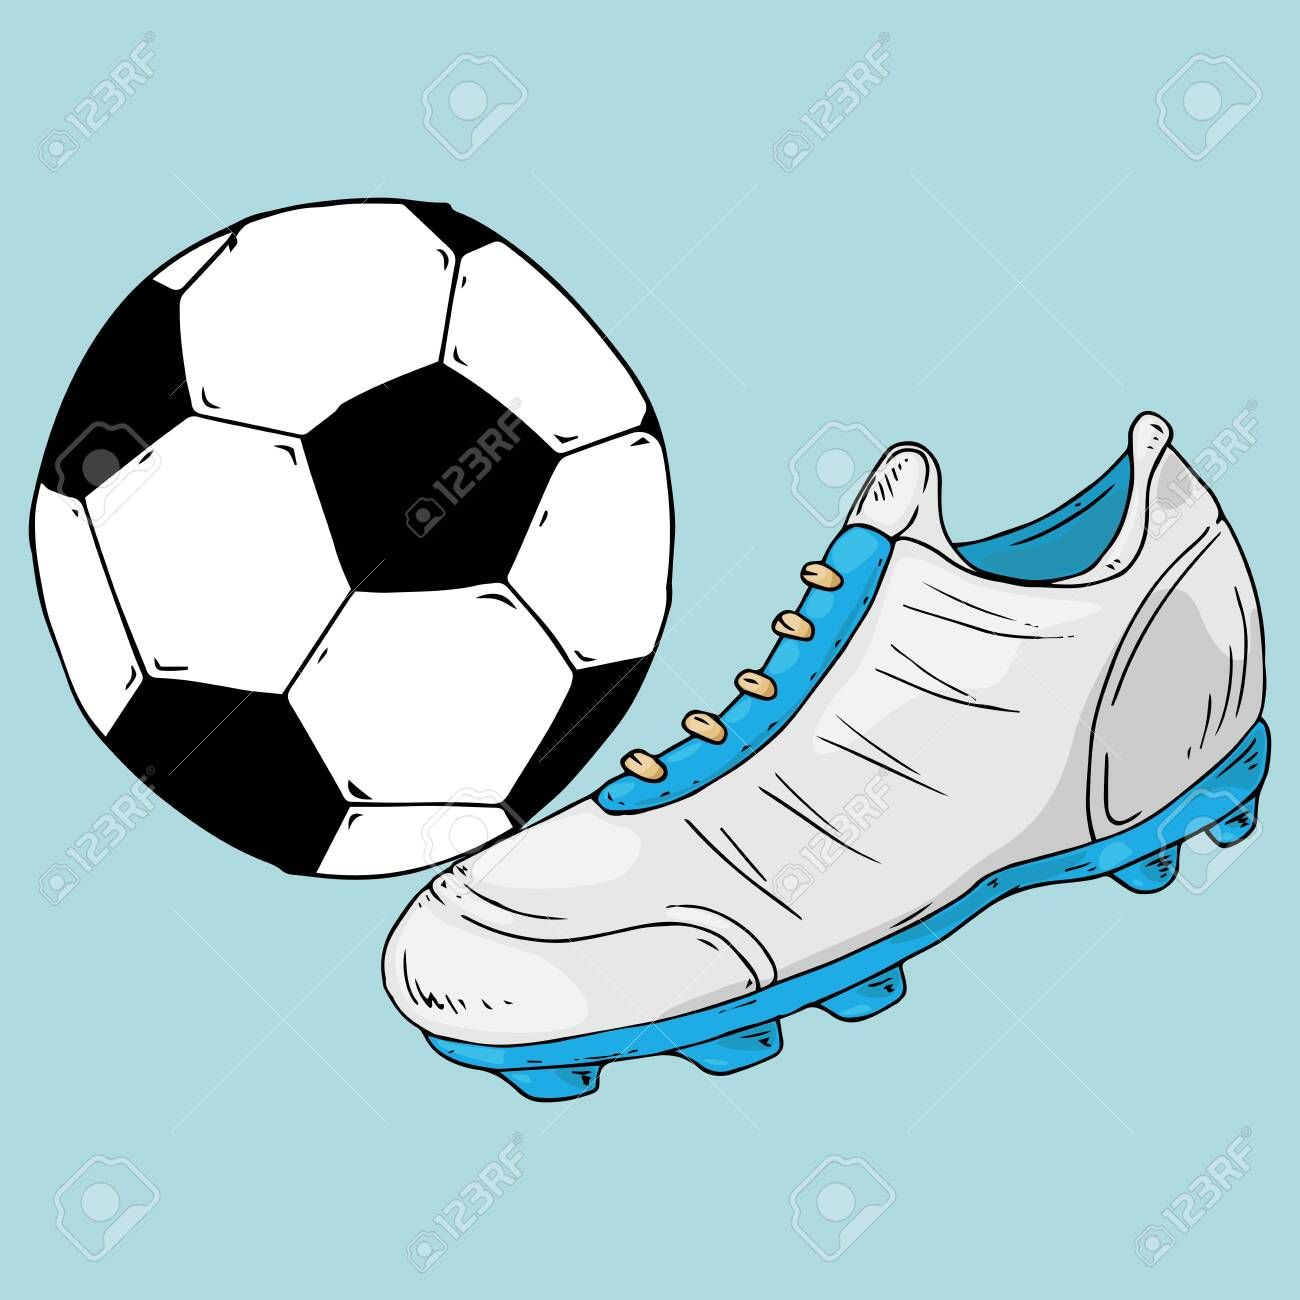 Ball Icon Vector Illustration Of A Soccer Ball With A Football Boot Hand Drawn Shoes And Ball For Playing Soccer Illustration Taschenrechner Taschen Deko